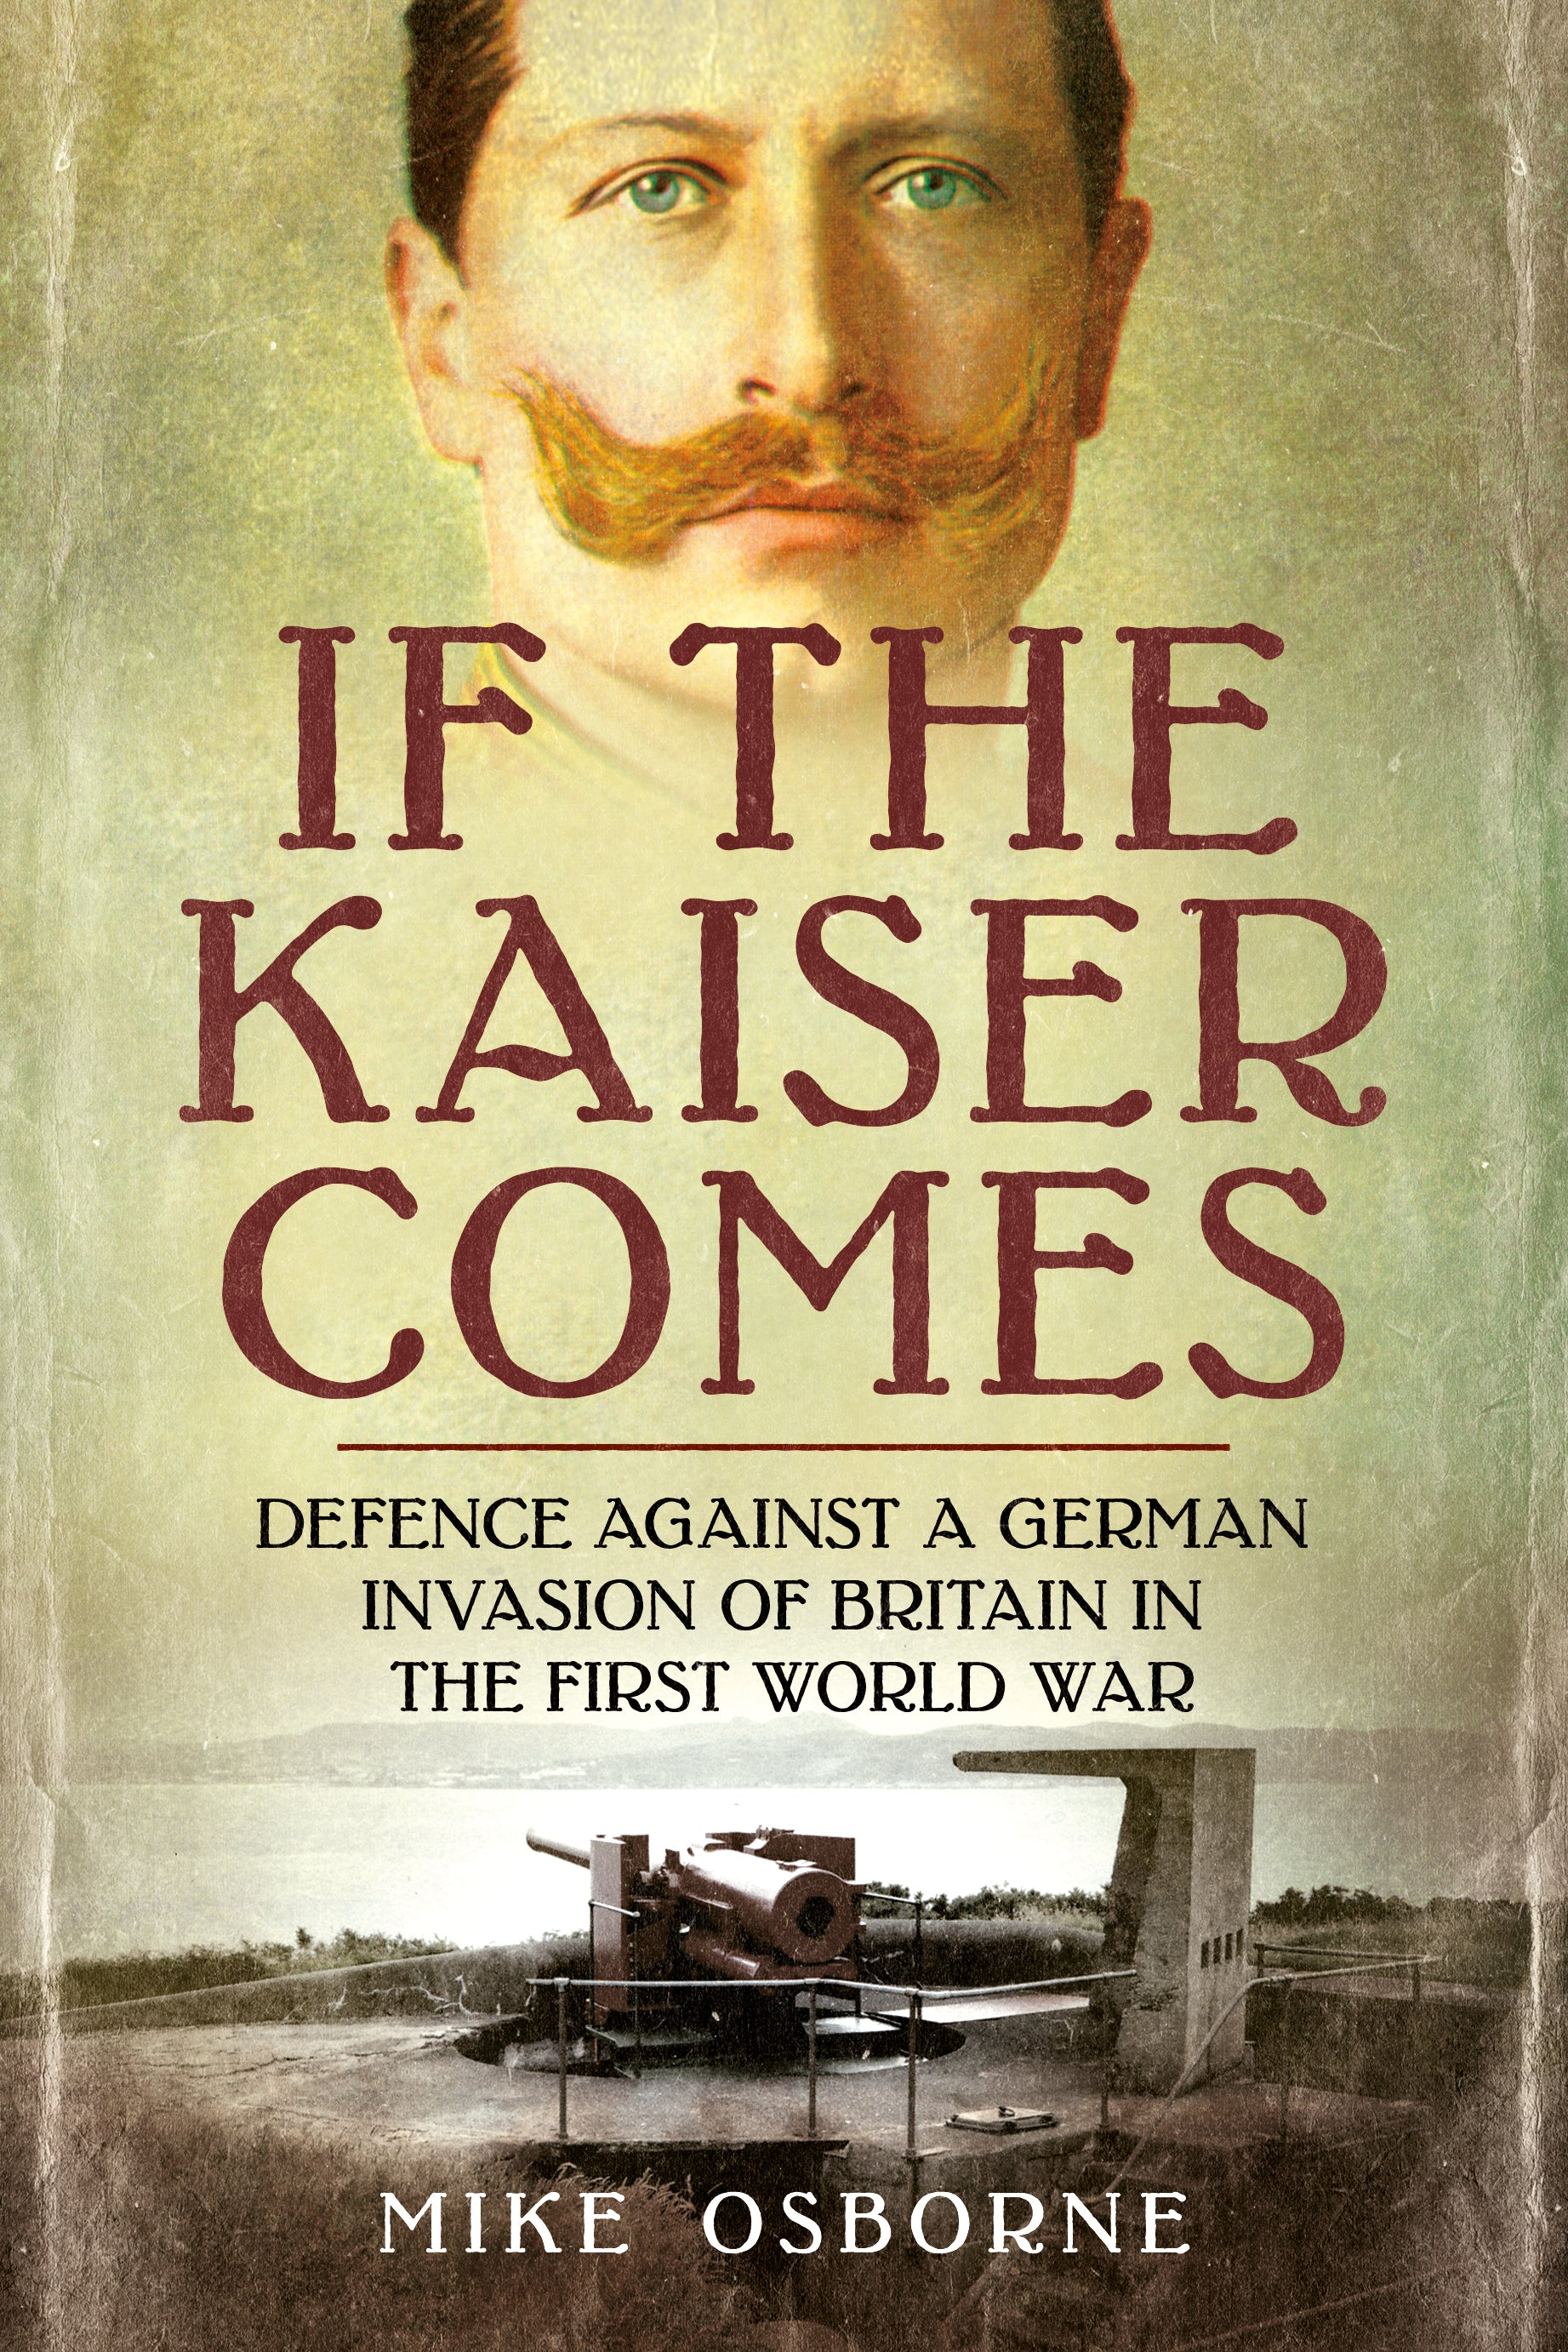 Image result for Britain and Kaiser